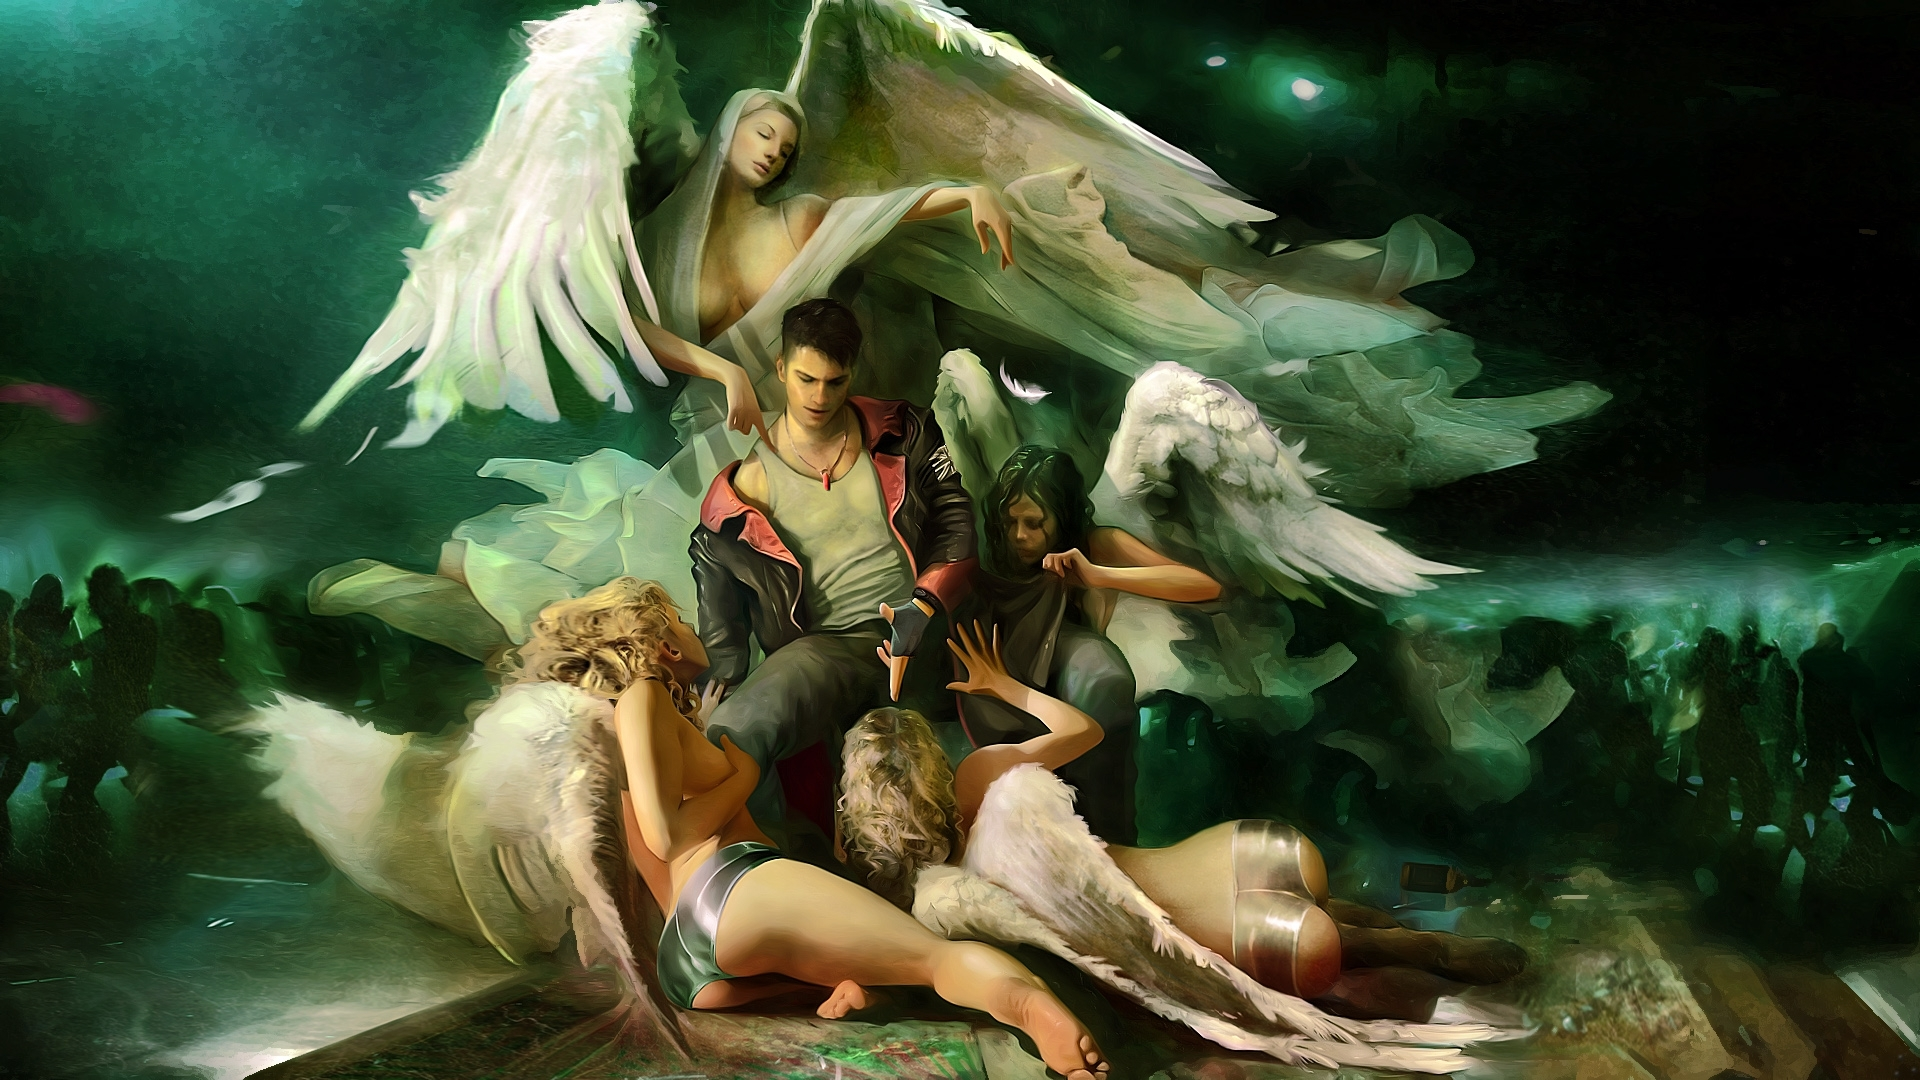 devil may cry angels wallpaper